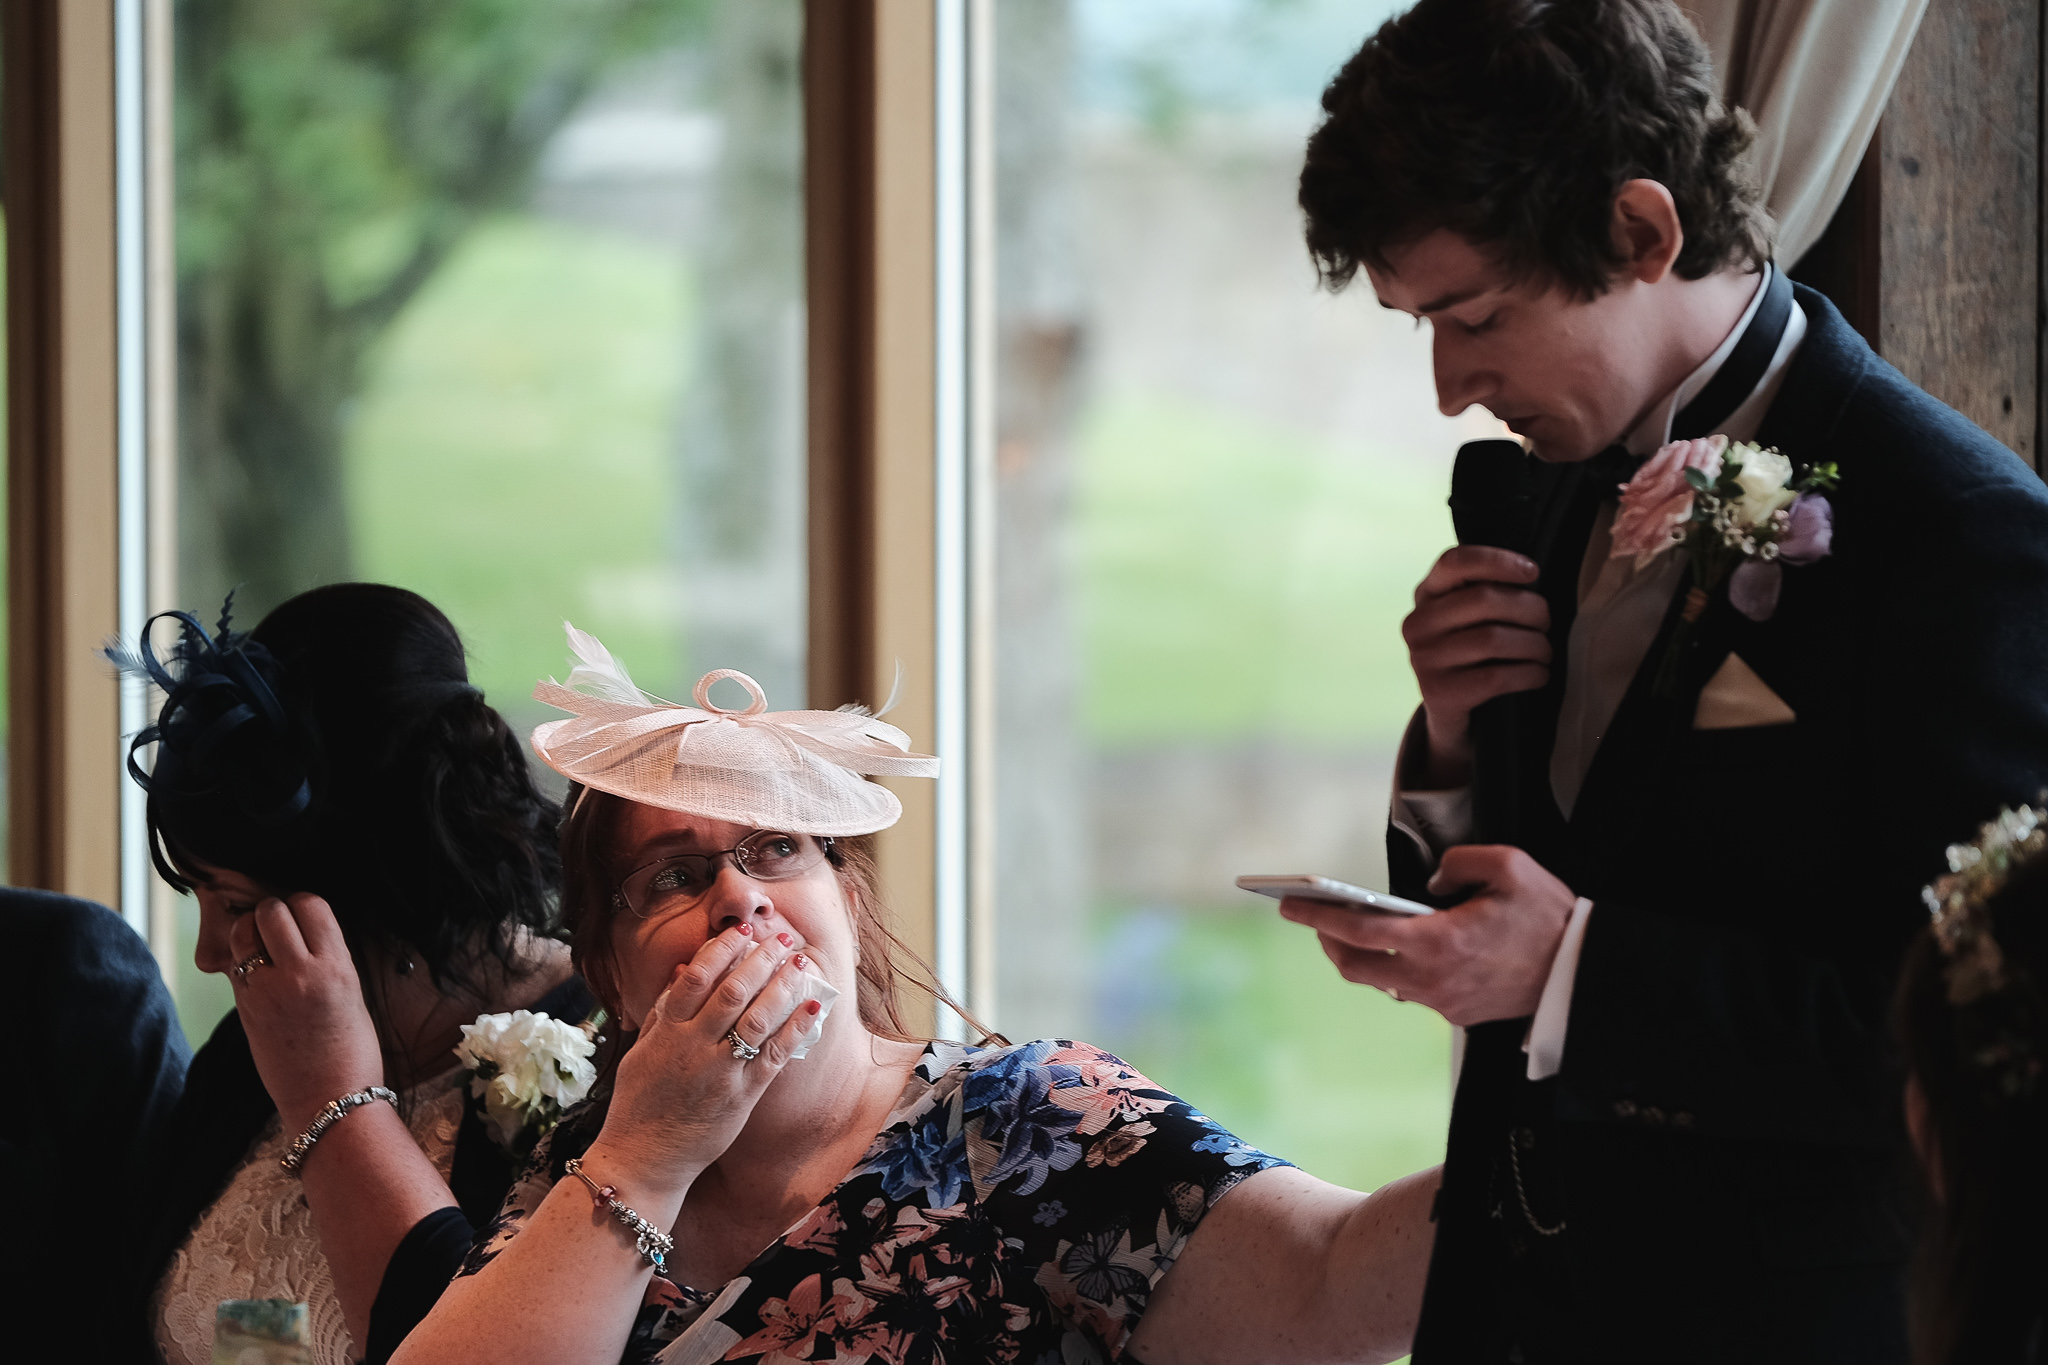 The crying mother of the groom reaches out to the groom as he cries while making his speech at Newton Hall, Northumberland by Barry Forshaw